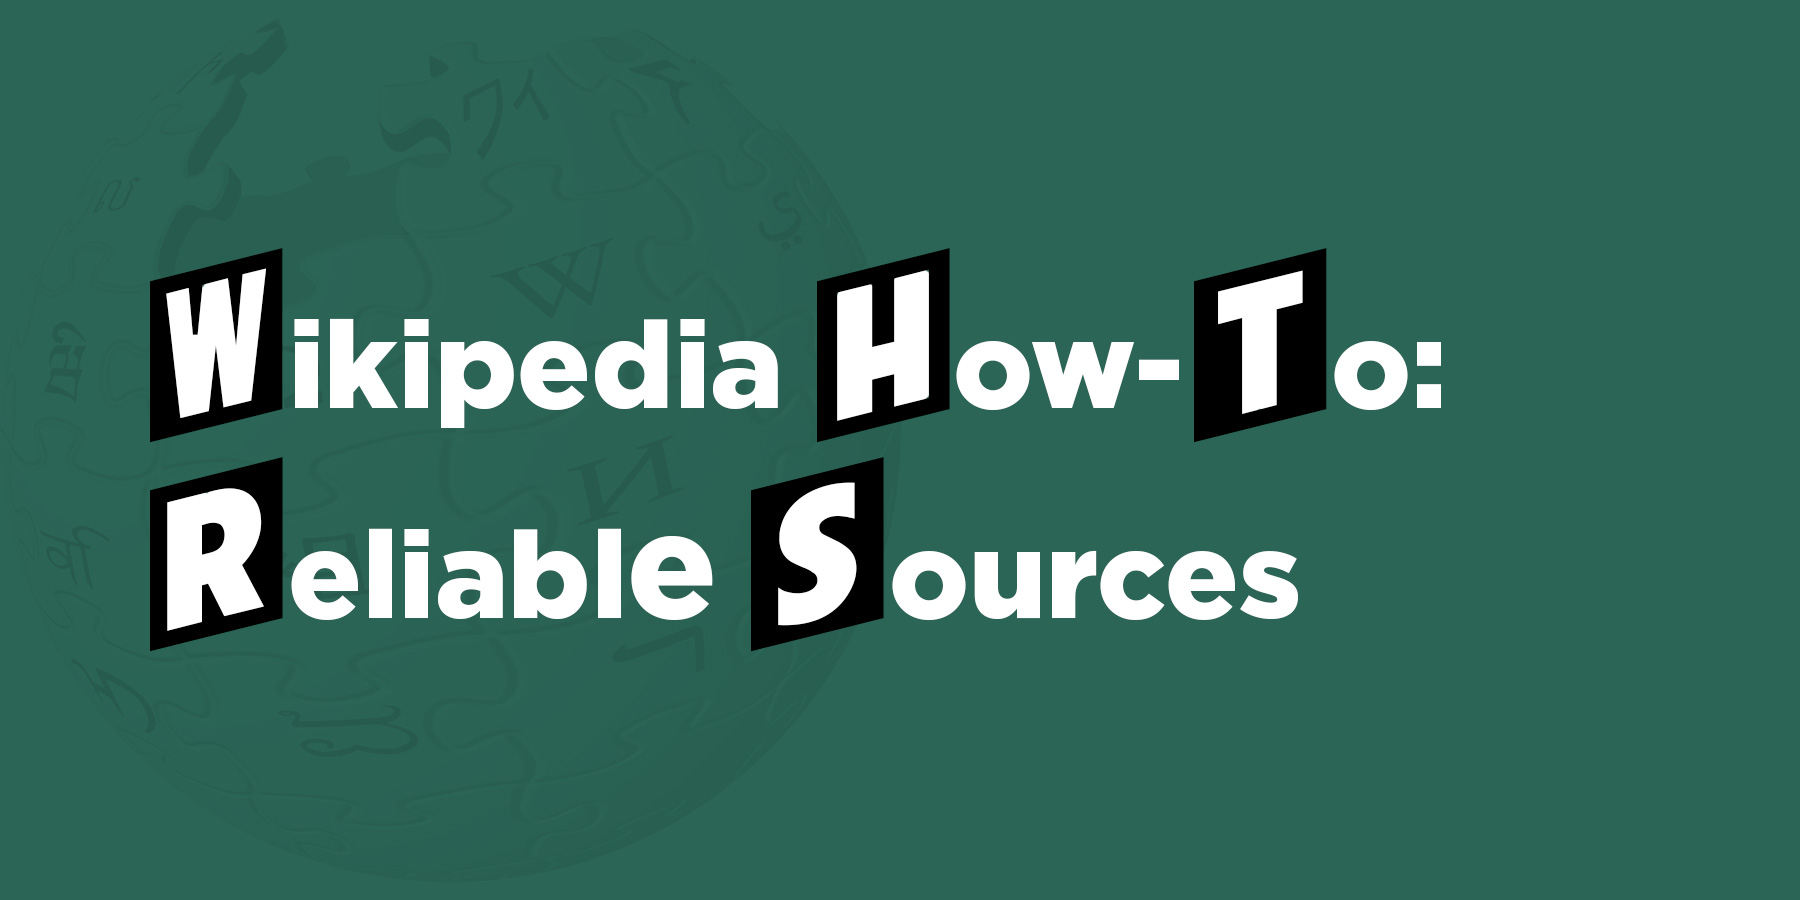 Wikipedia How-To: Reliable Sources